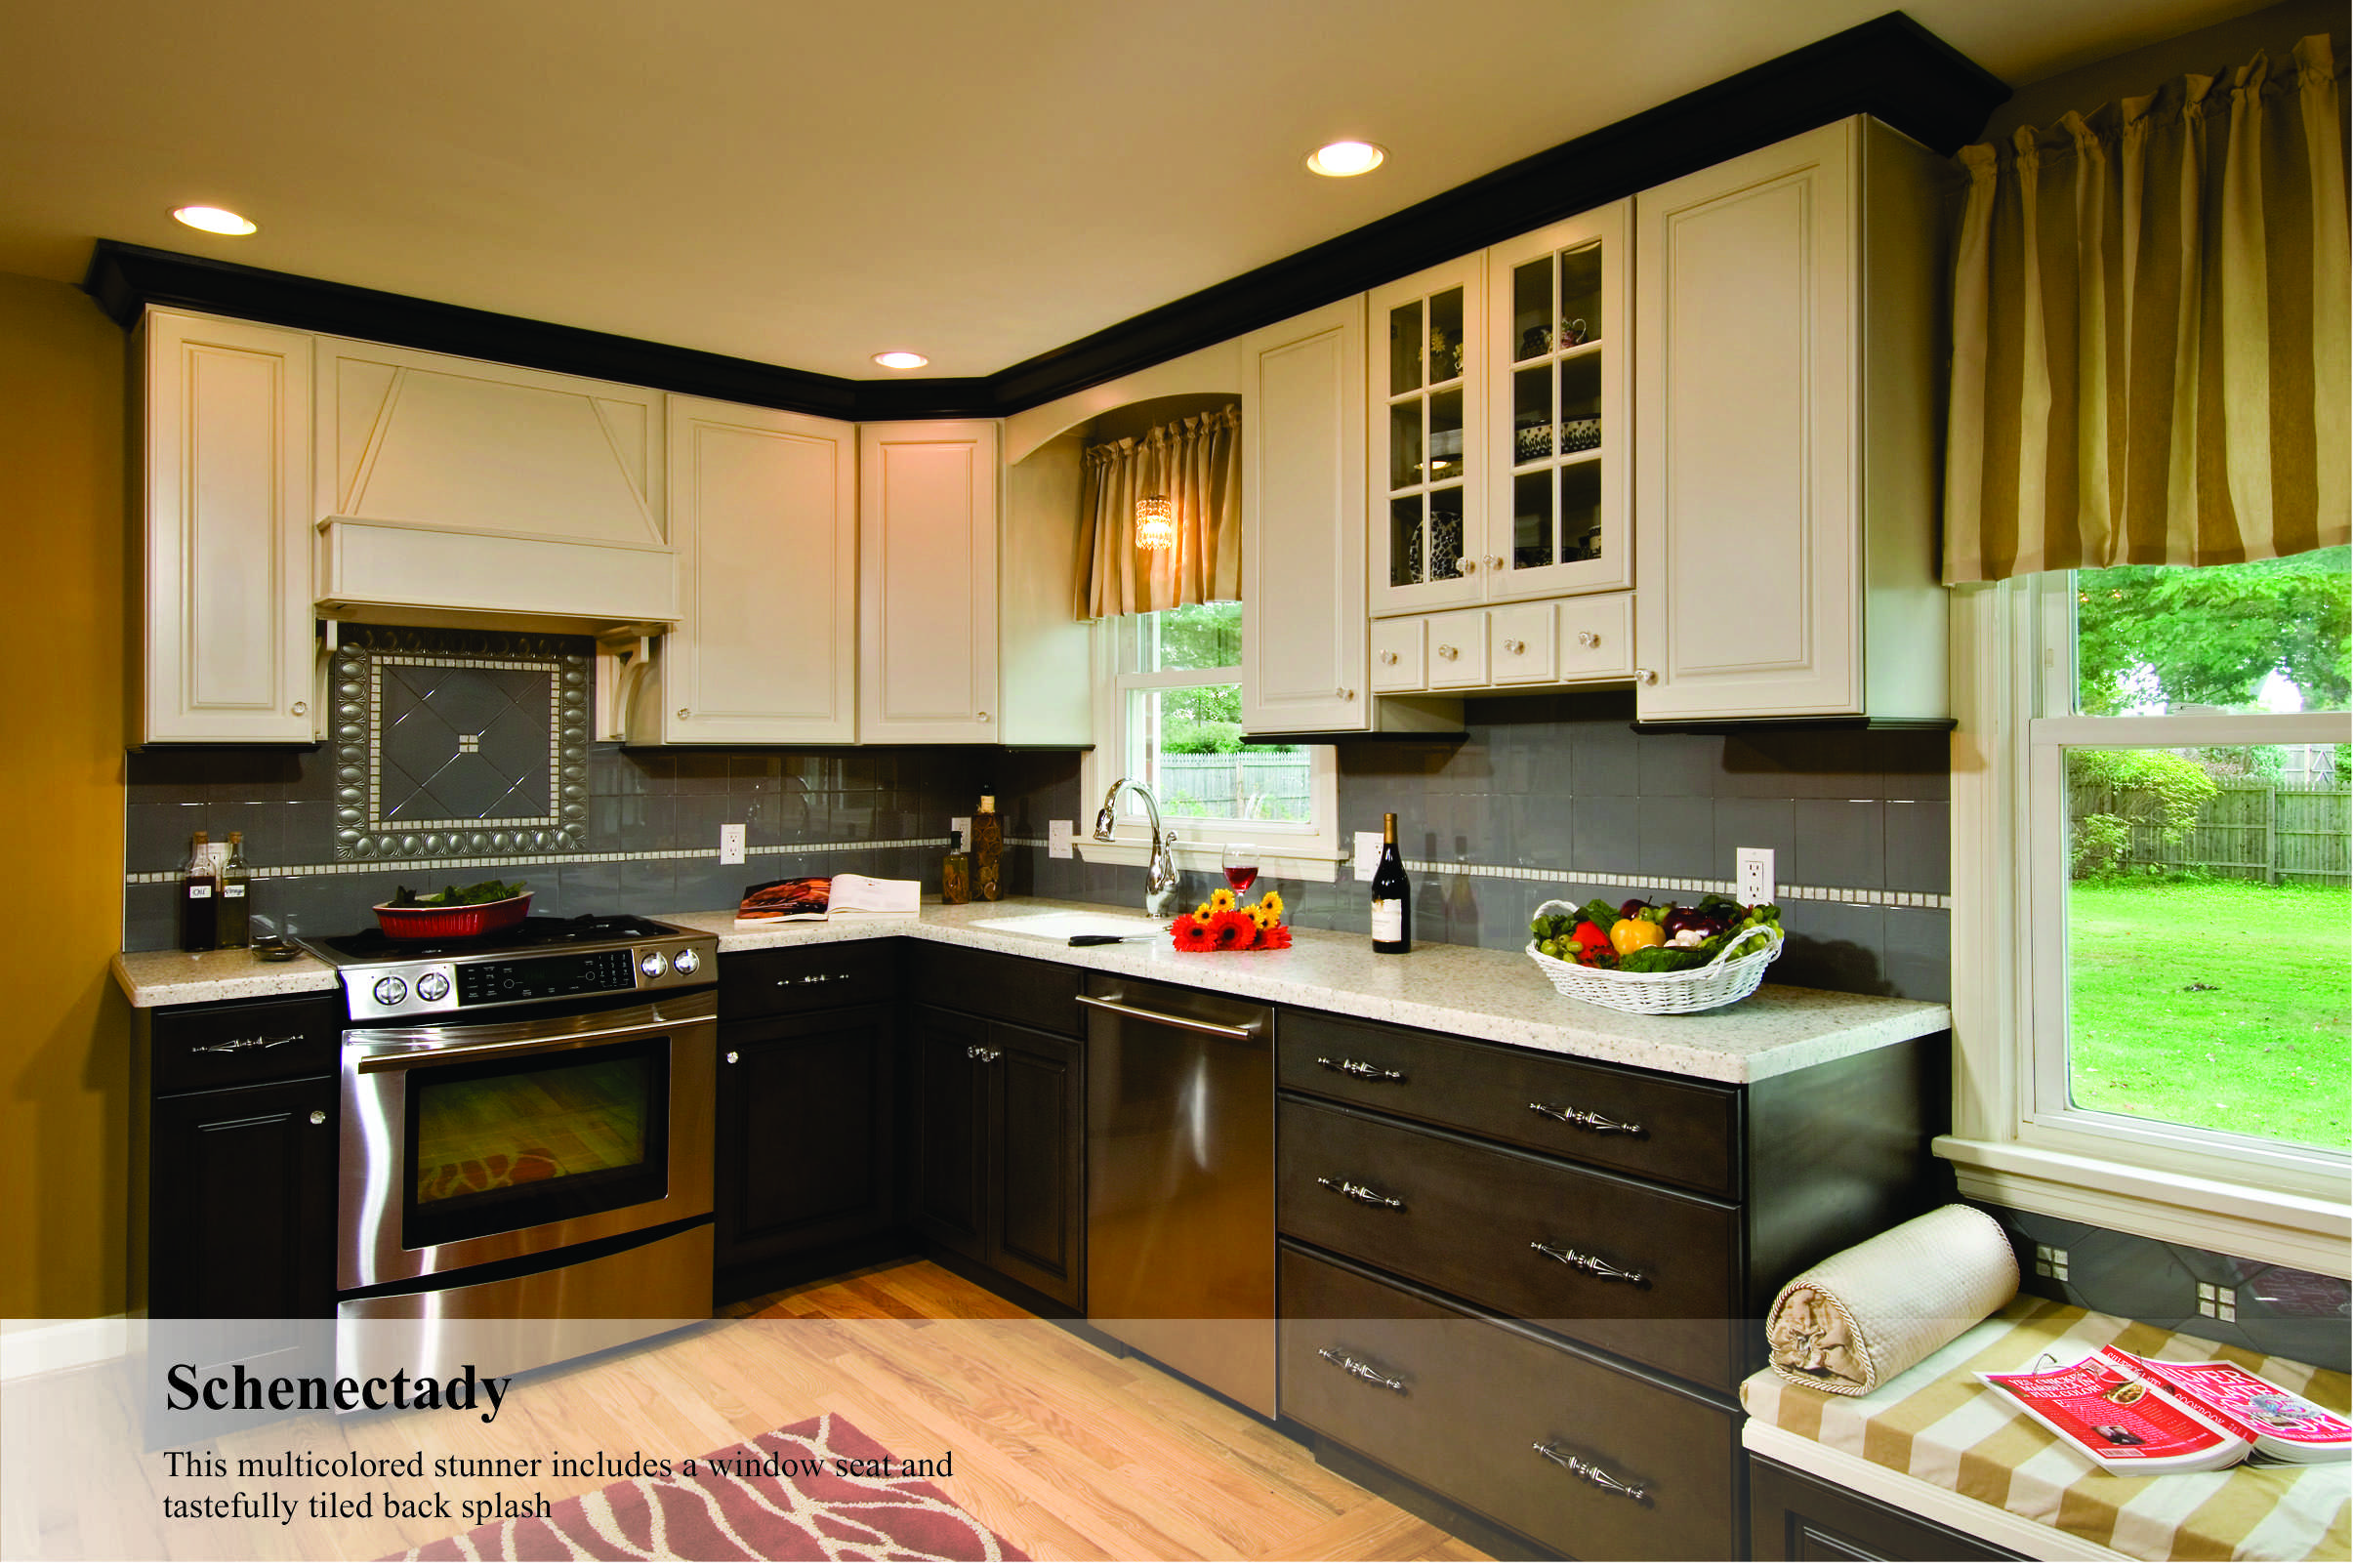 Kitchen and bath world custom kitchen designs albany ny for Kitchen and bath design